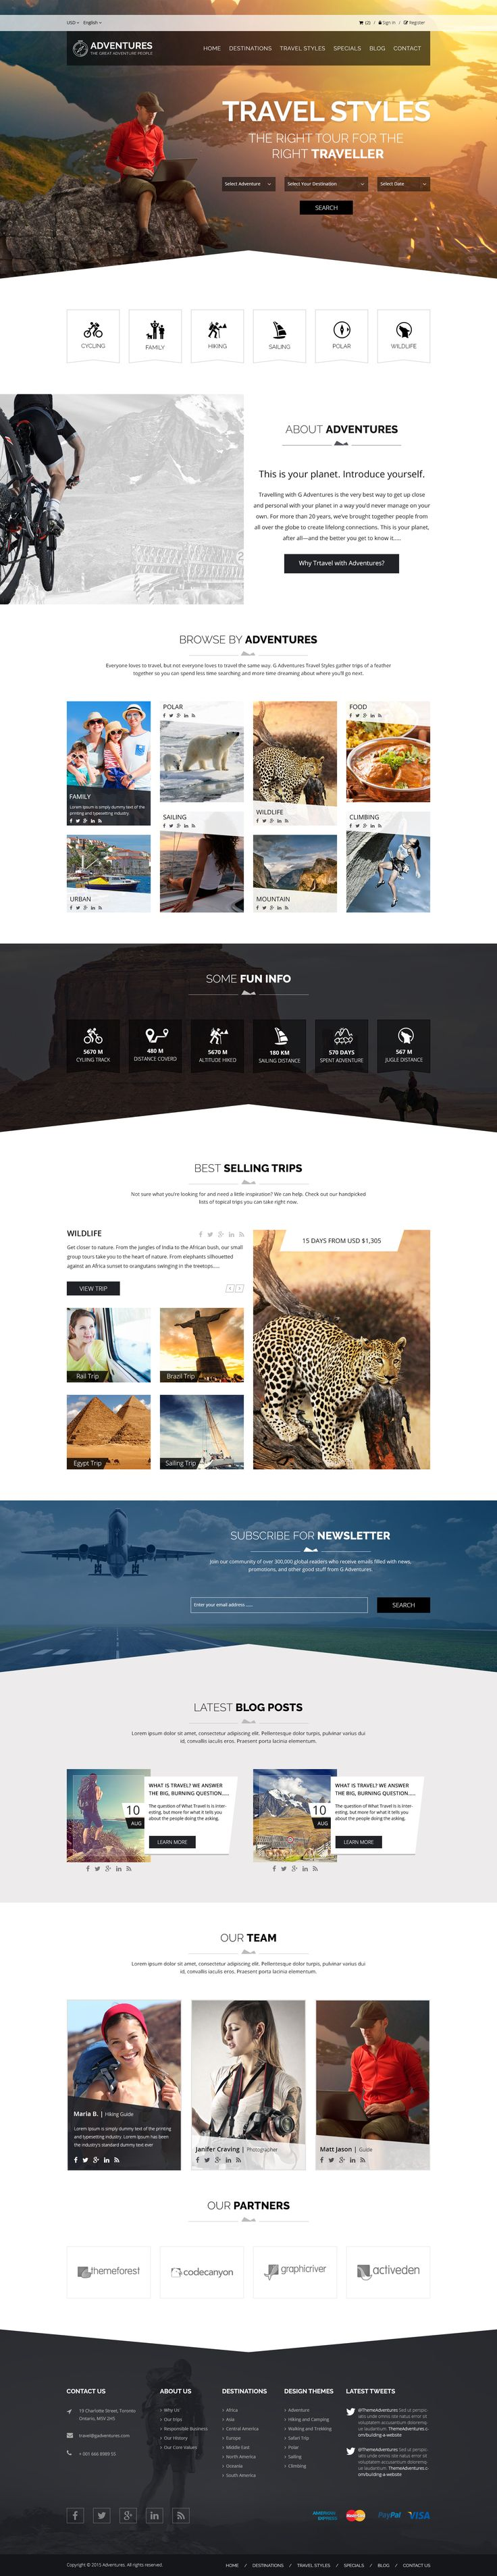 Adventures – Adventures and Tour PSD Template #web design #trekking #hiking and camping • Download ➝ https://themeforest.net/item/adventures-adventures-and-tour-psd-template/13511275?ref=pxcr